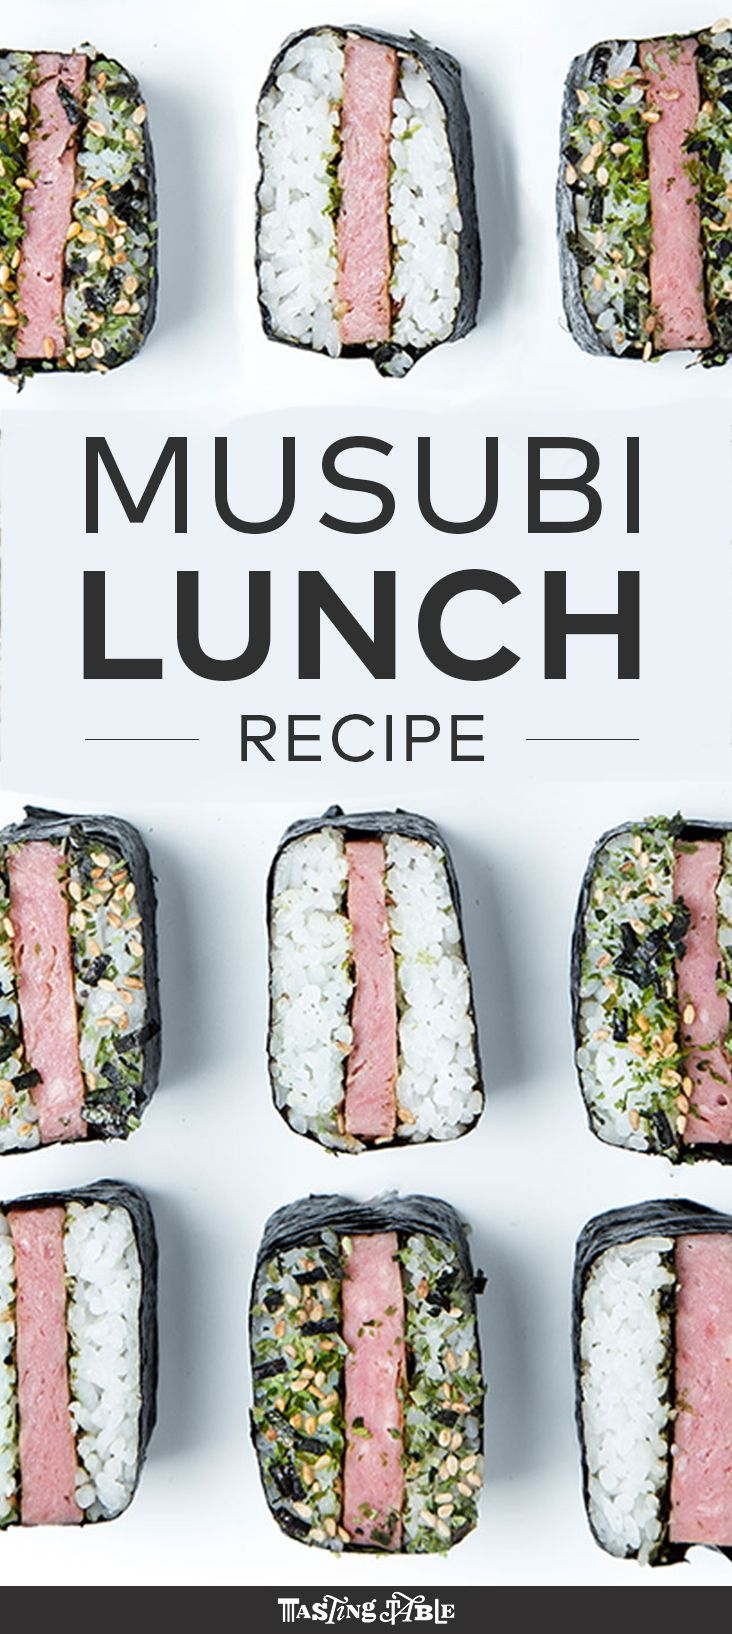 Master the art of making Spam musubi, Hawaii's sushi-lunch meat mash-up.